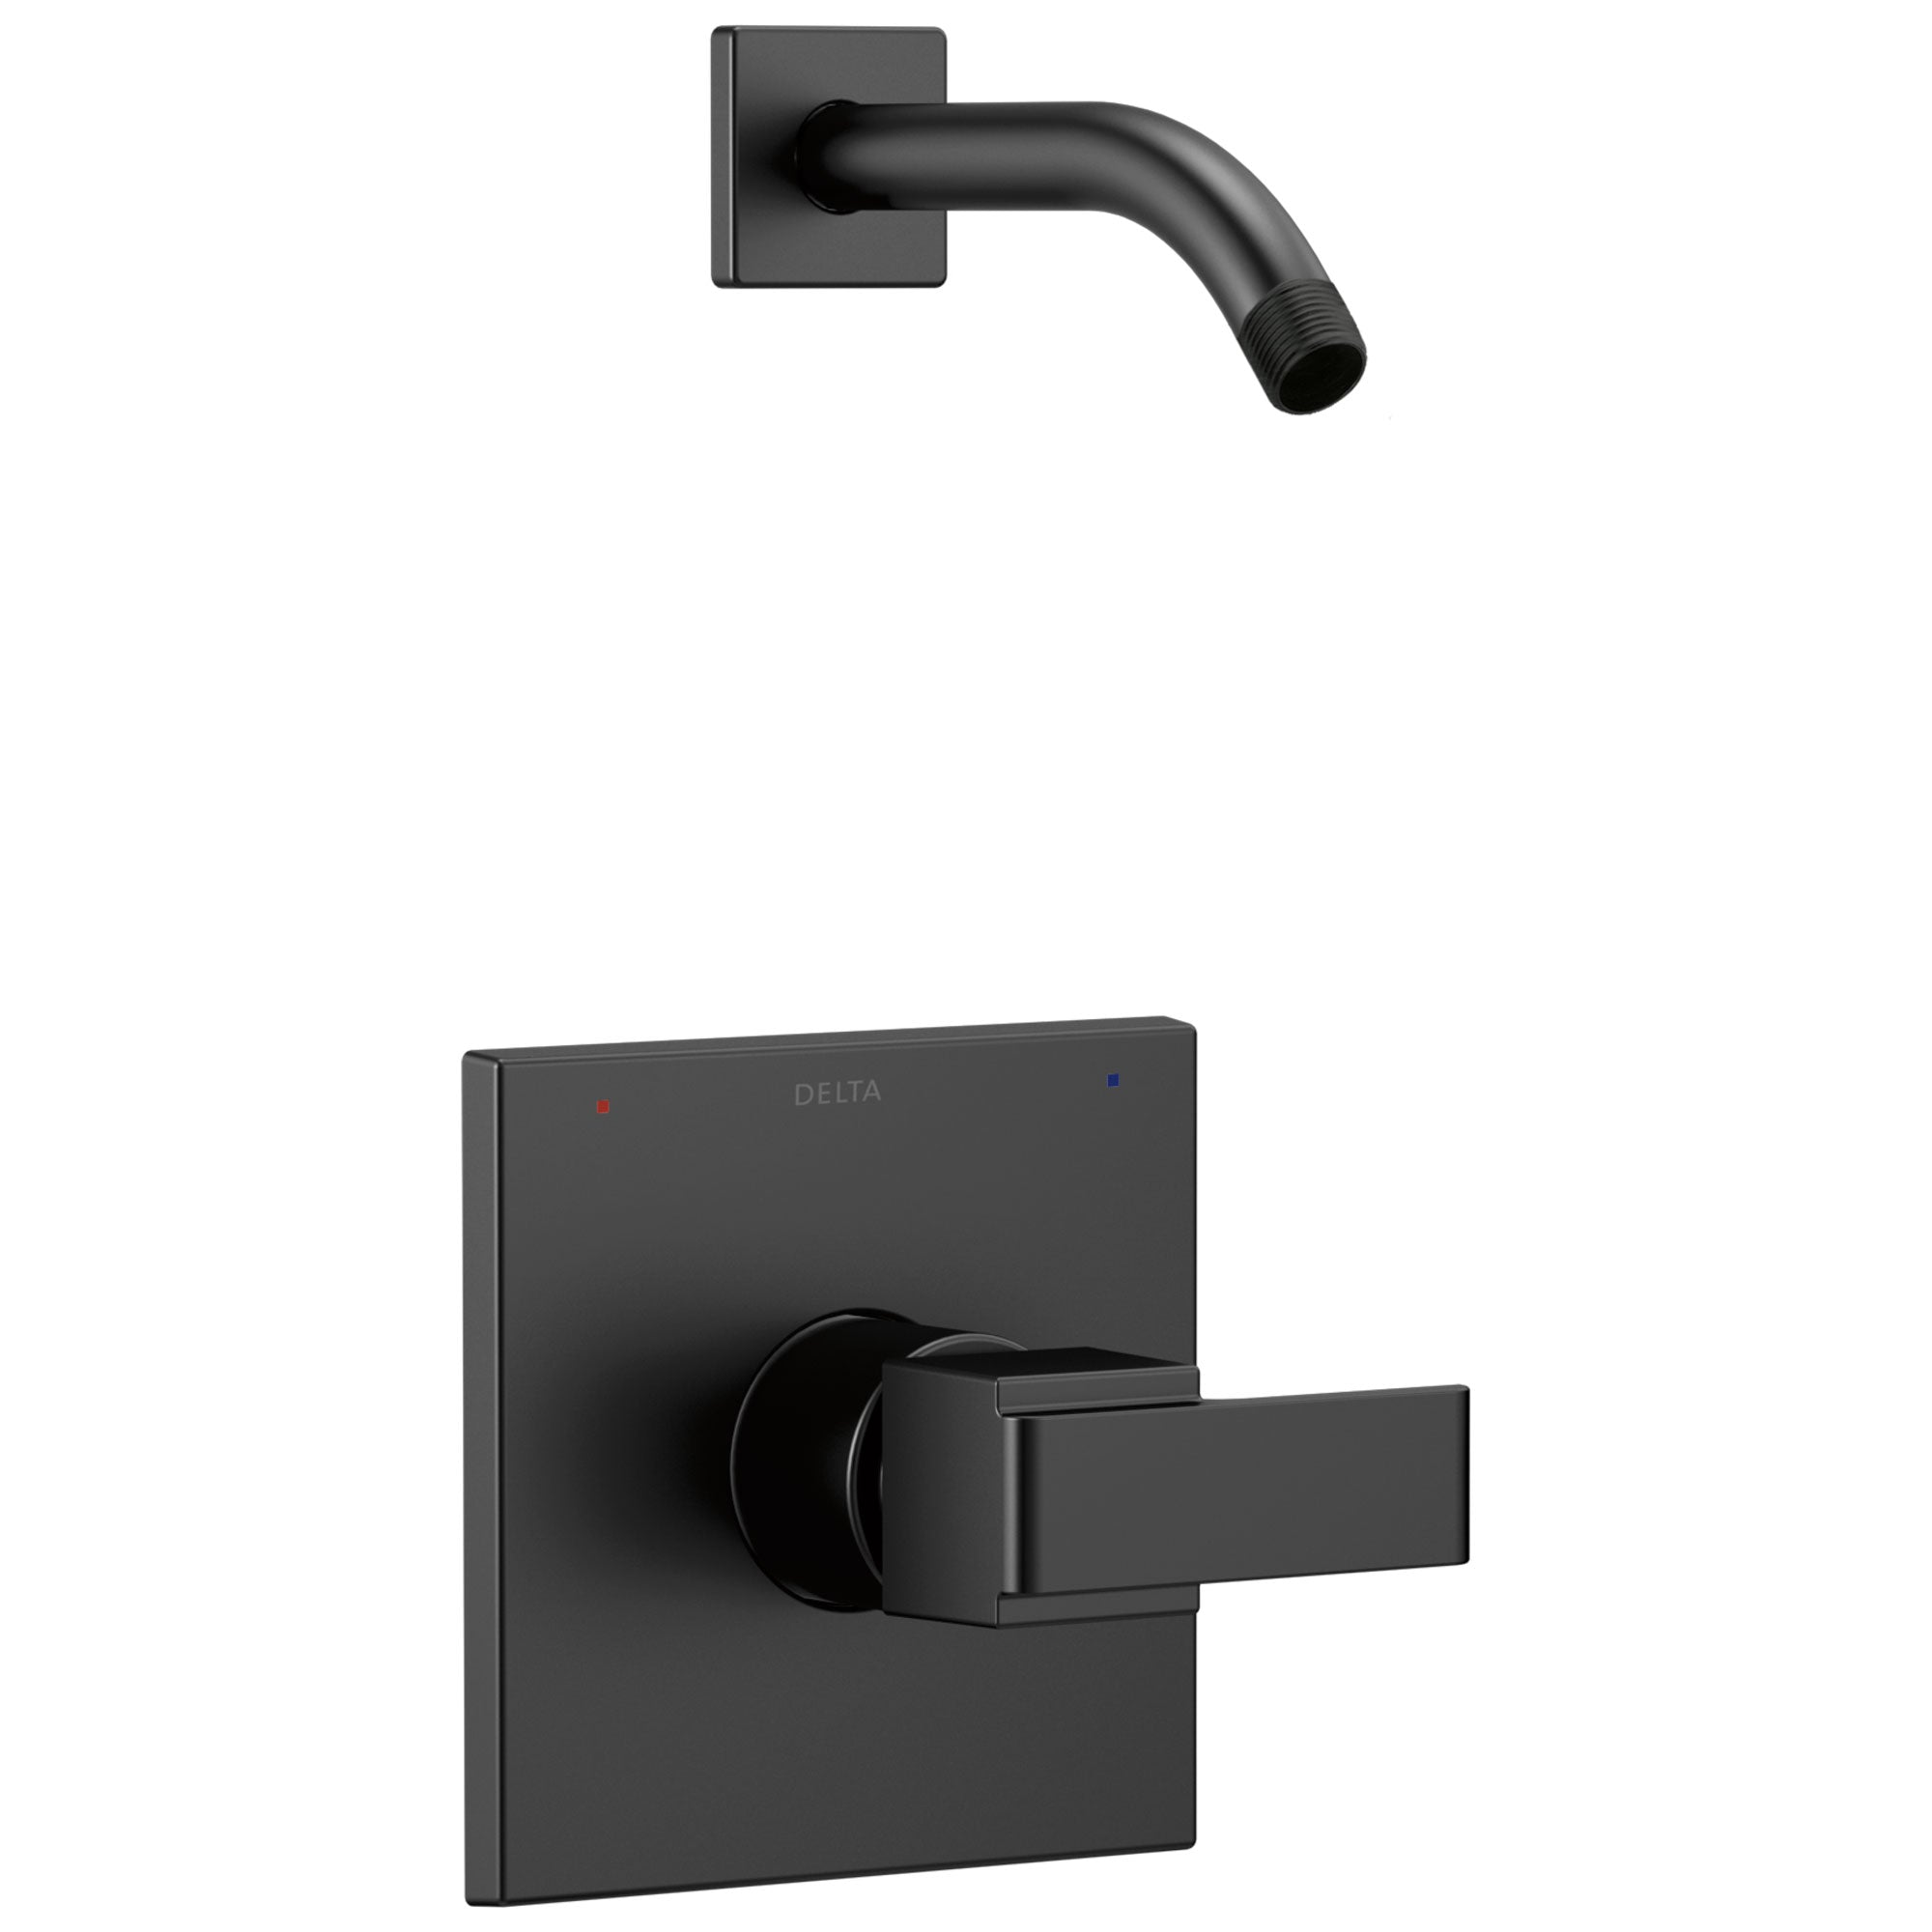 Delta Ara Collection Matte Black Finish Monitor 14 Modern Square Plate Single Handle Shower only Trim - Less Showerhead (Requires Valve) DT14267BLLHD